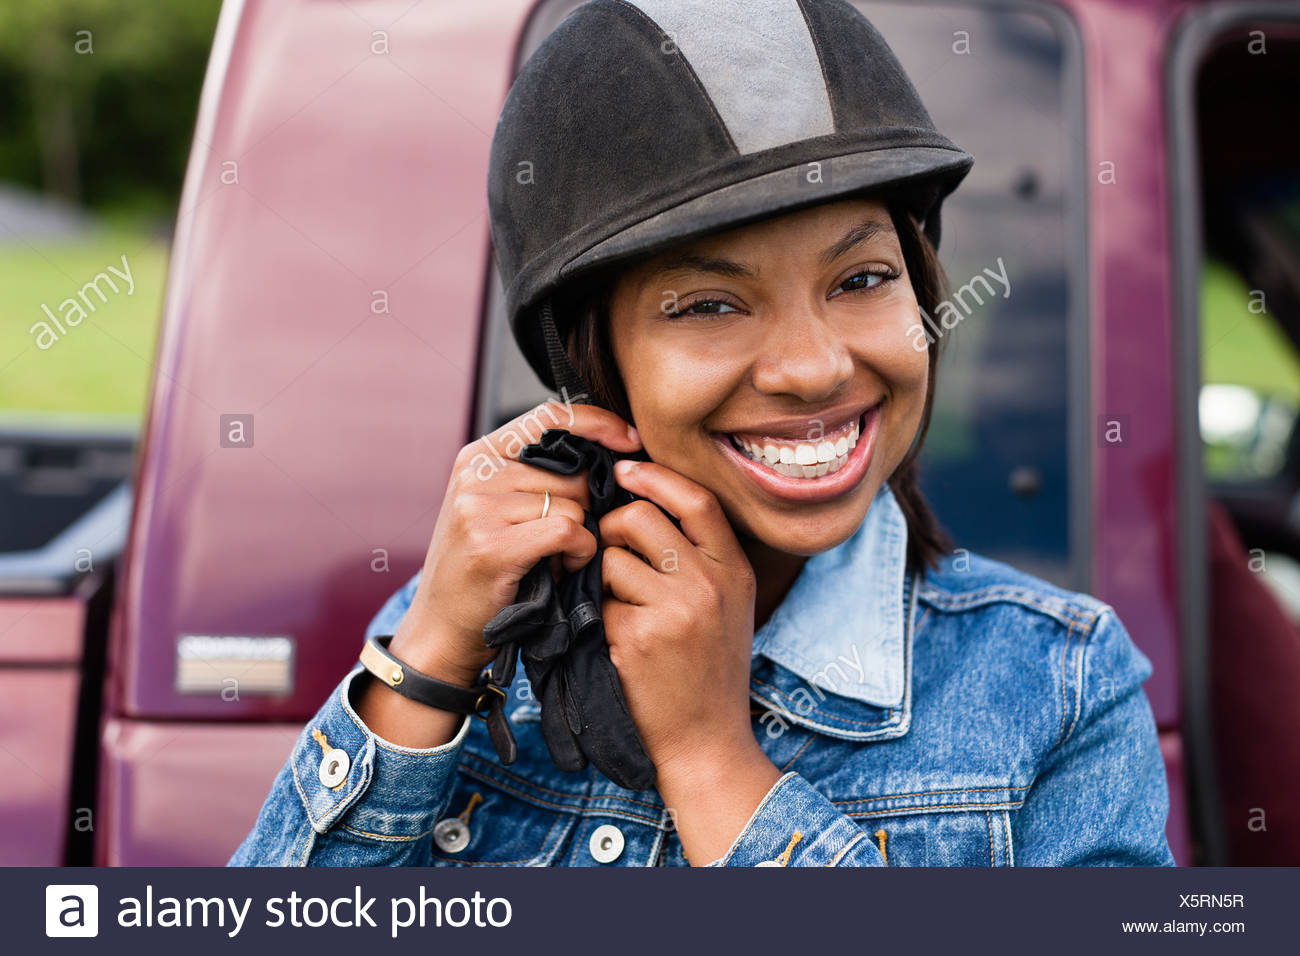 Horse rider putting on riding hat Stock Photo